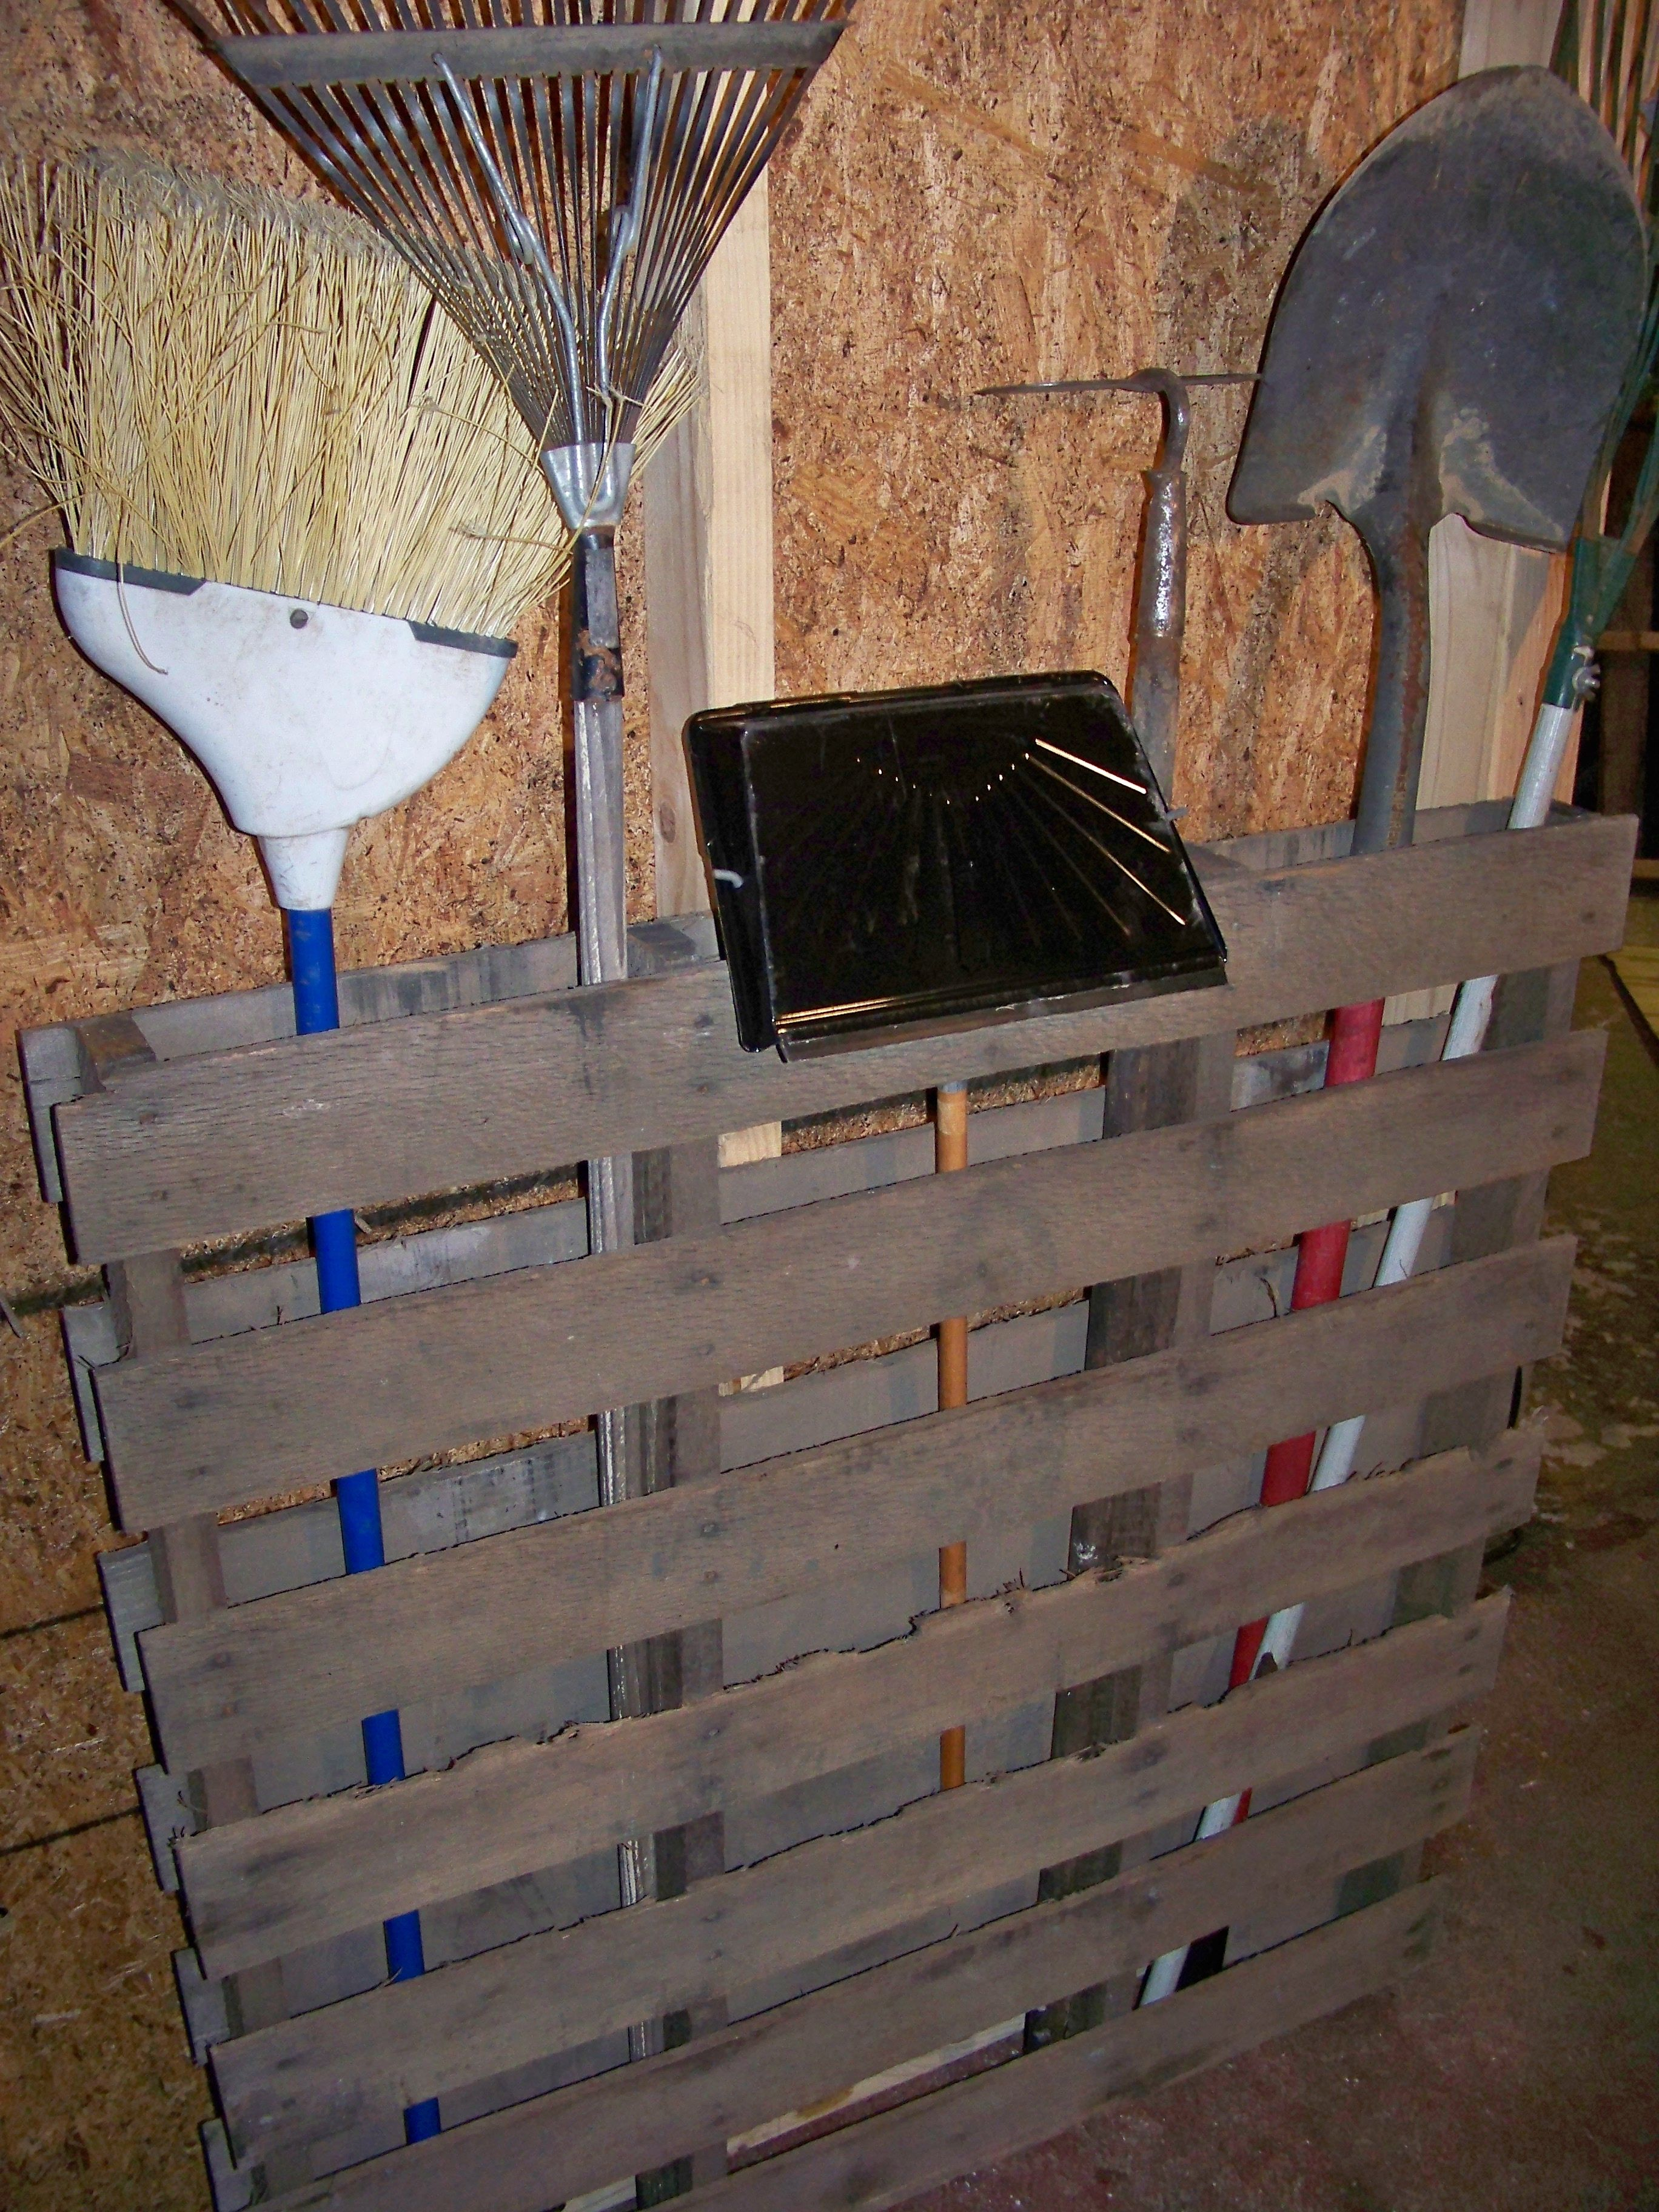 Use an old pallet for tool/cleaning storage in a barn or shed.  GREAT IDEA!!!!